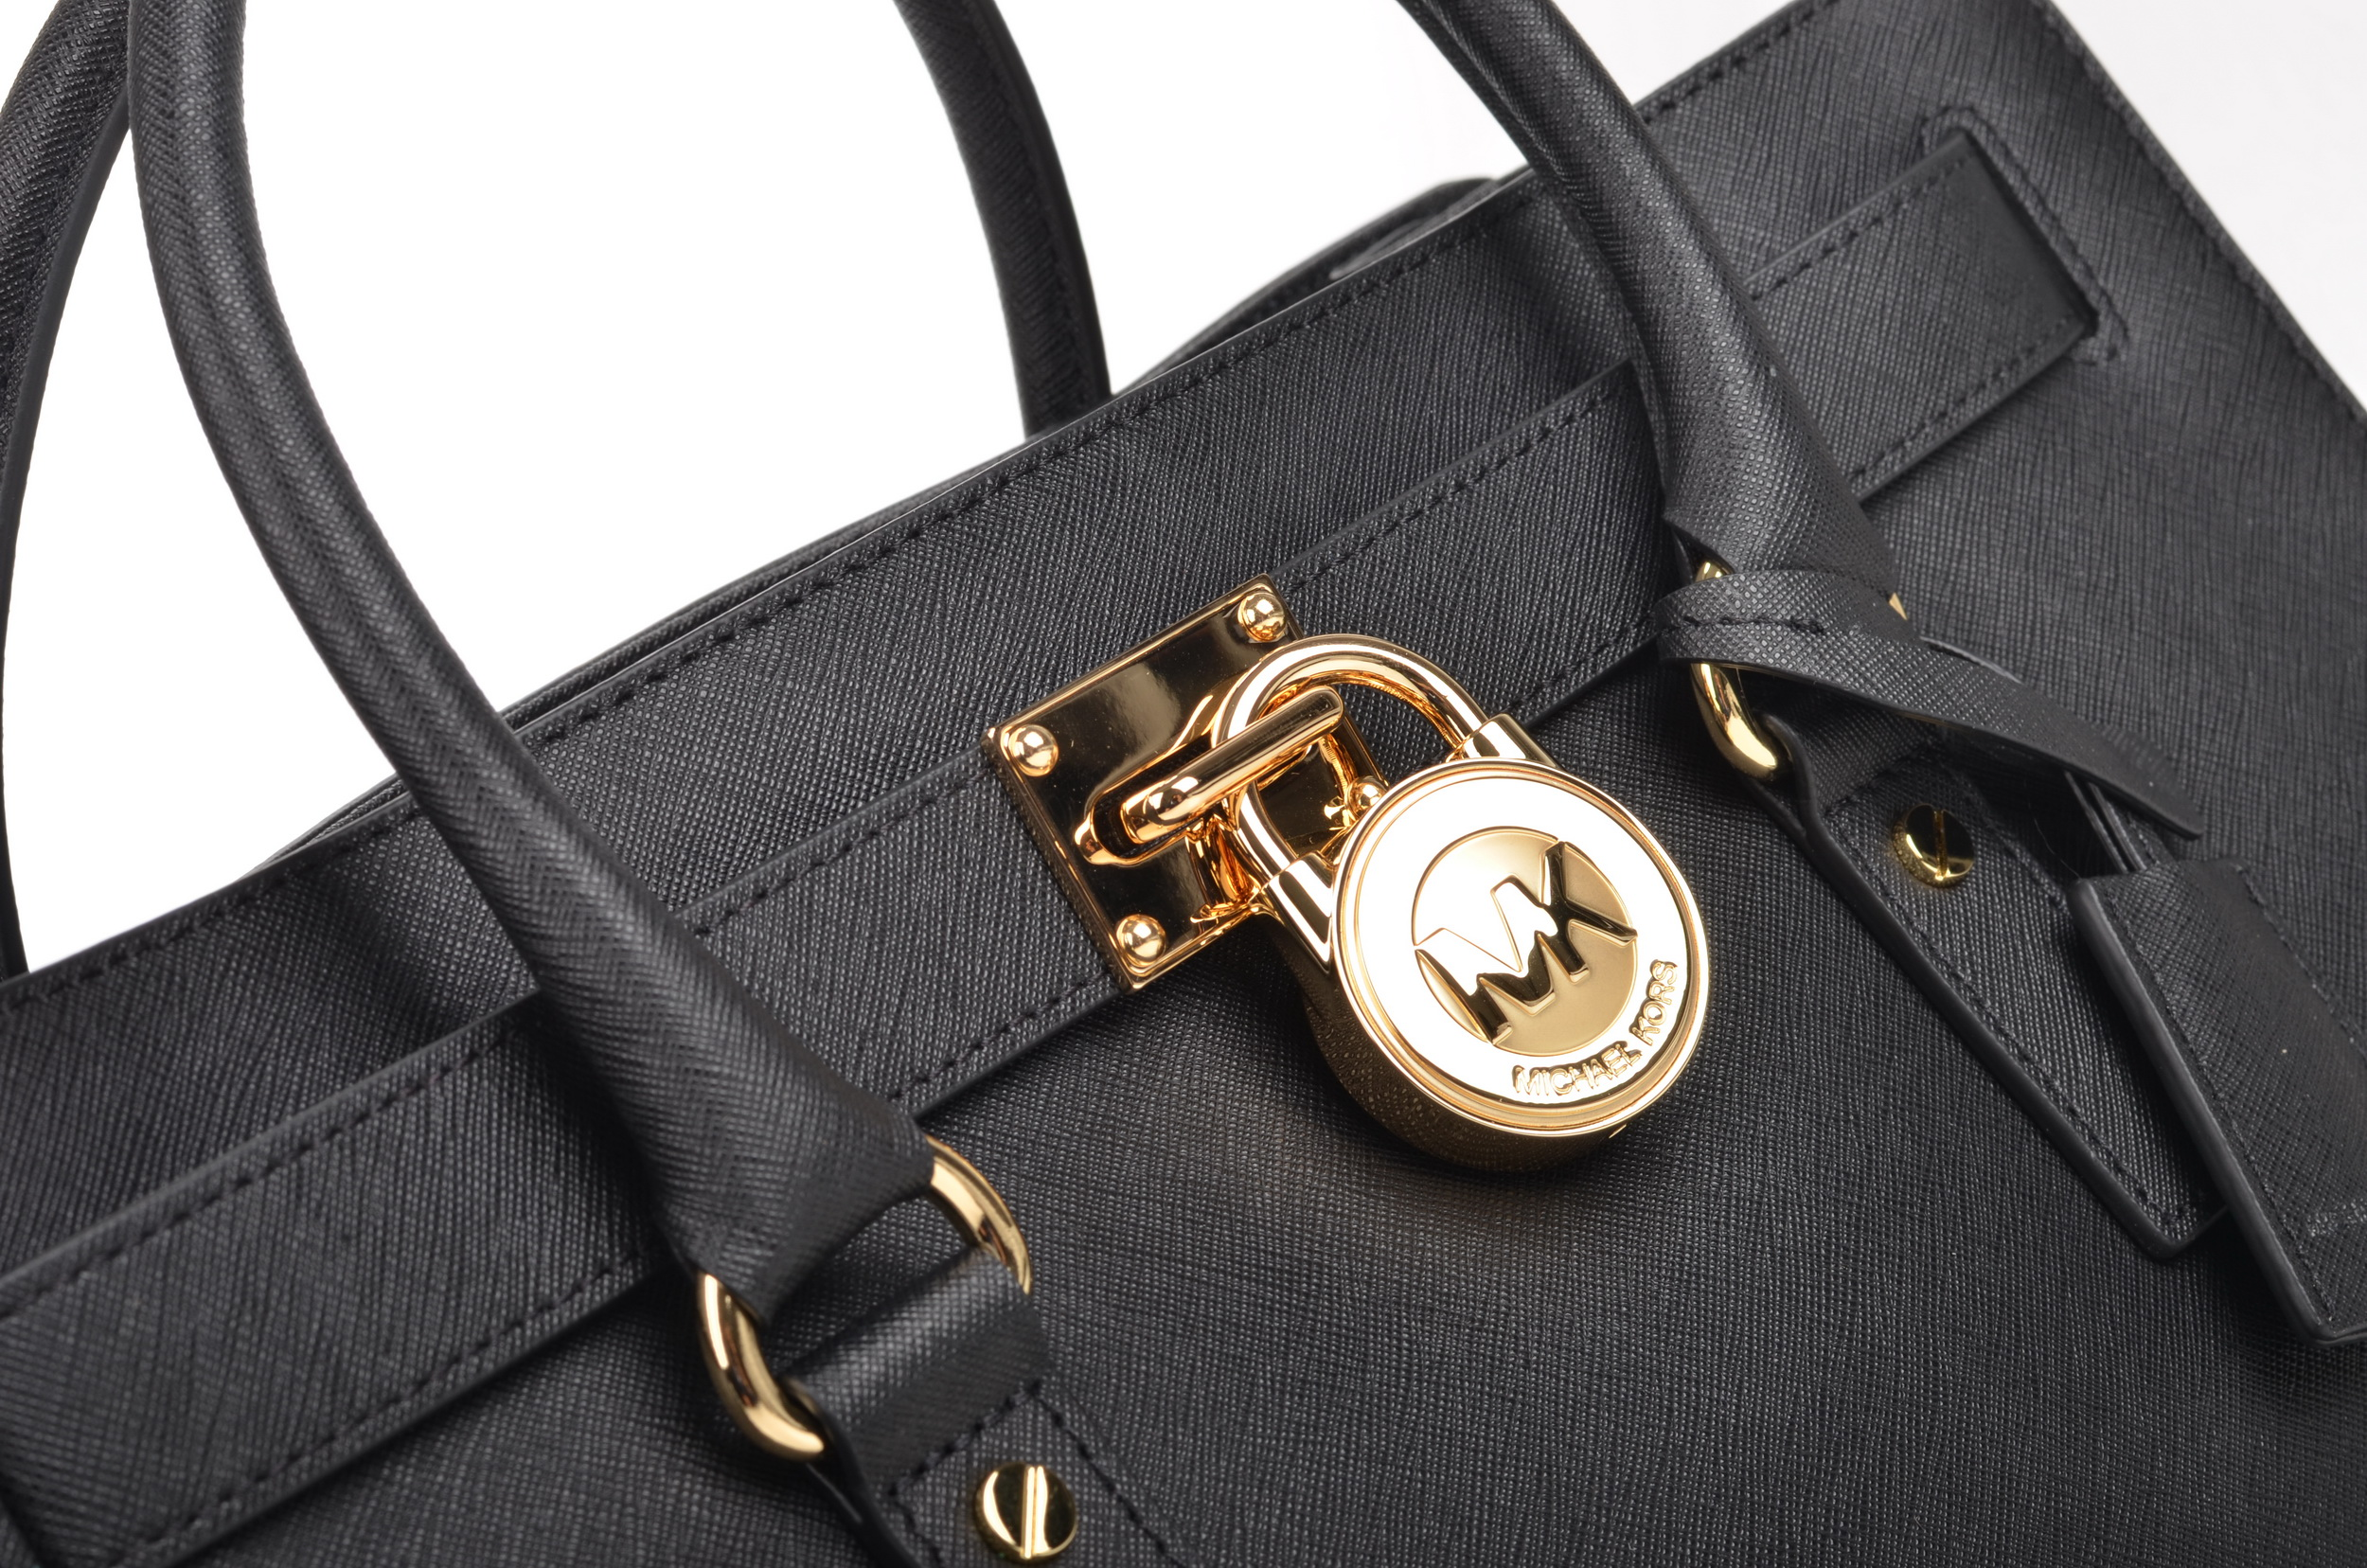 file michael kors hamilton lg ew satchel handtasche. Black Bedroom Furniture Sets. Home Design Ideas